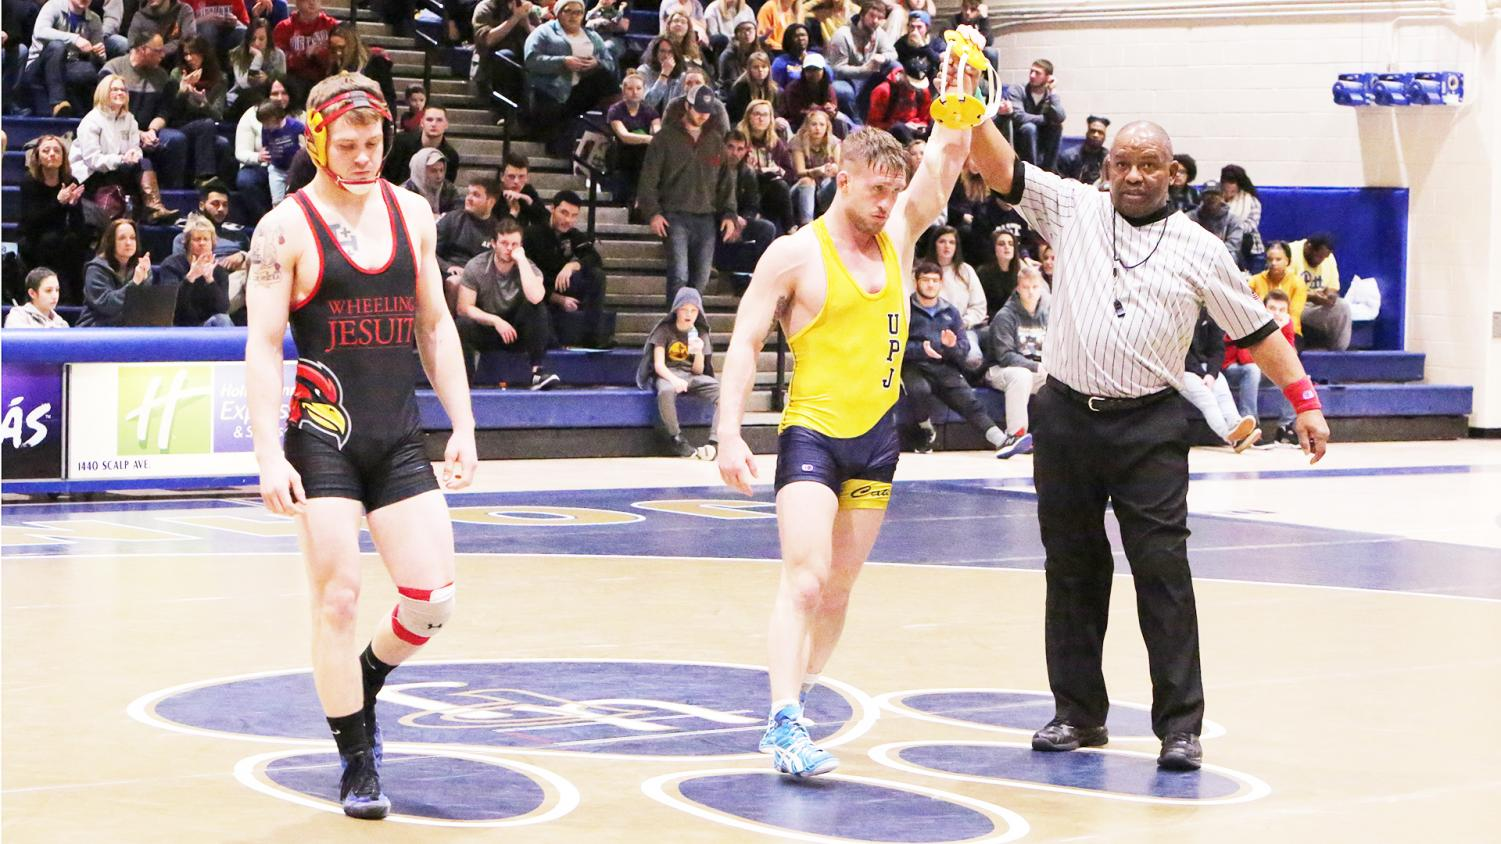 Senior wrestler Cody Law was victorious after a bout last weekend at the Sports Center.